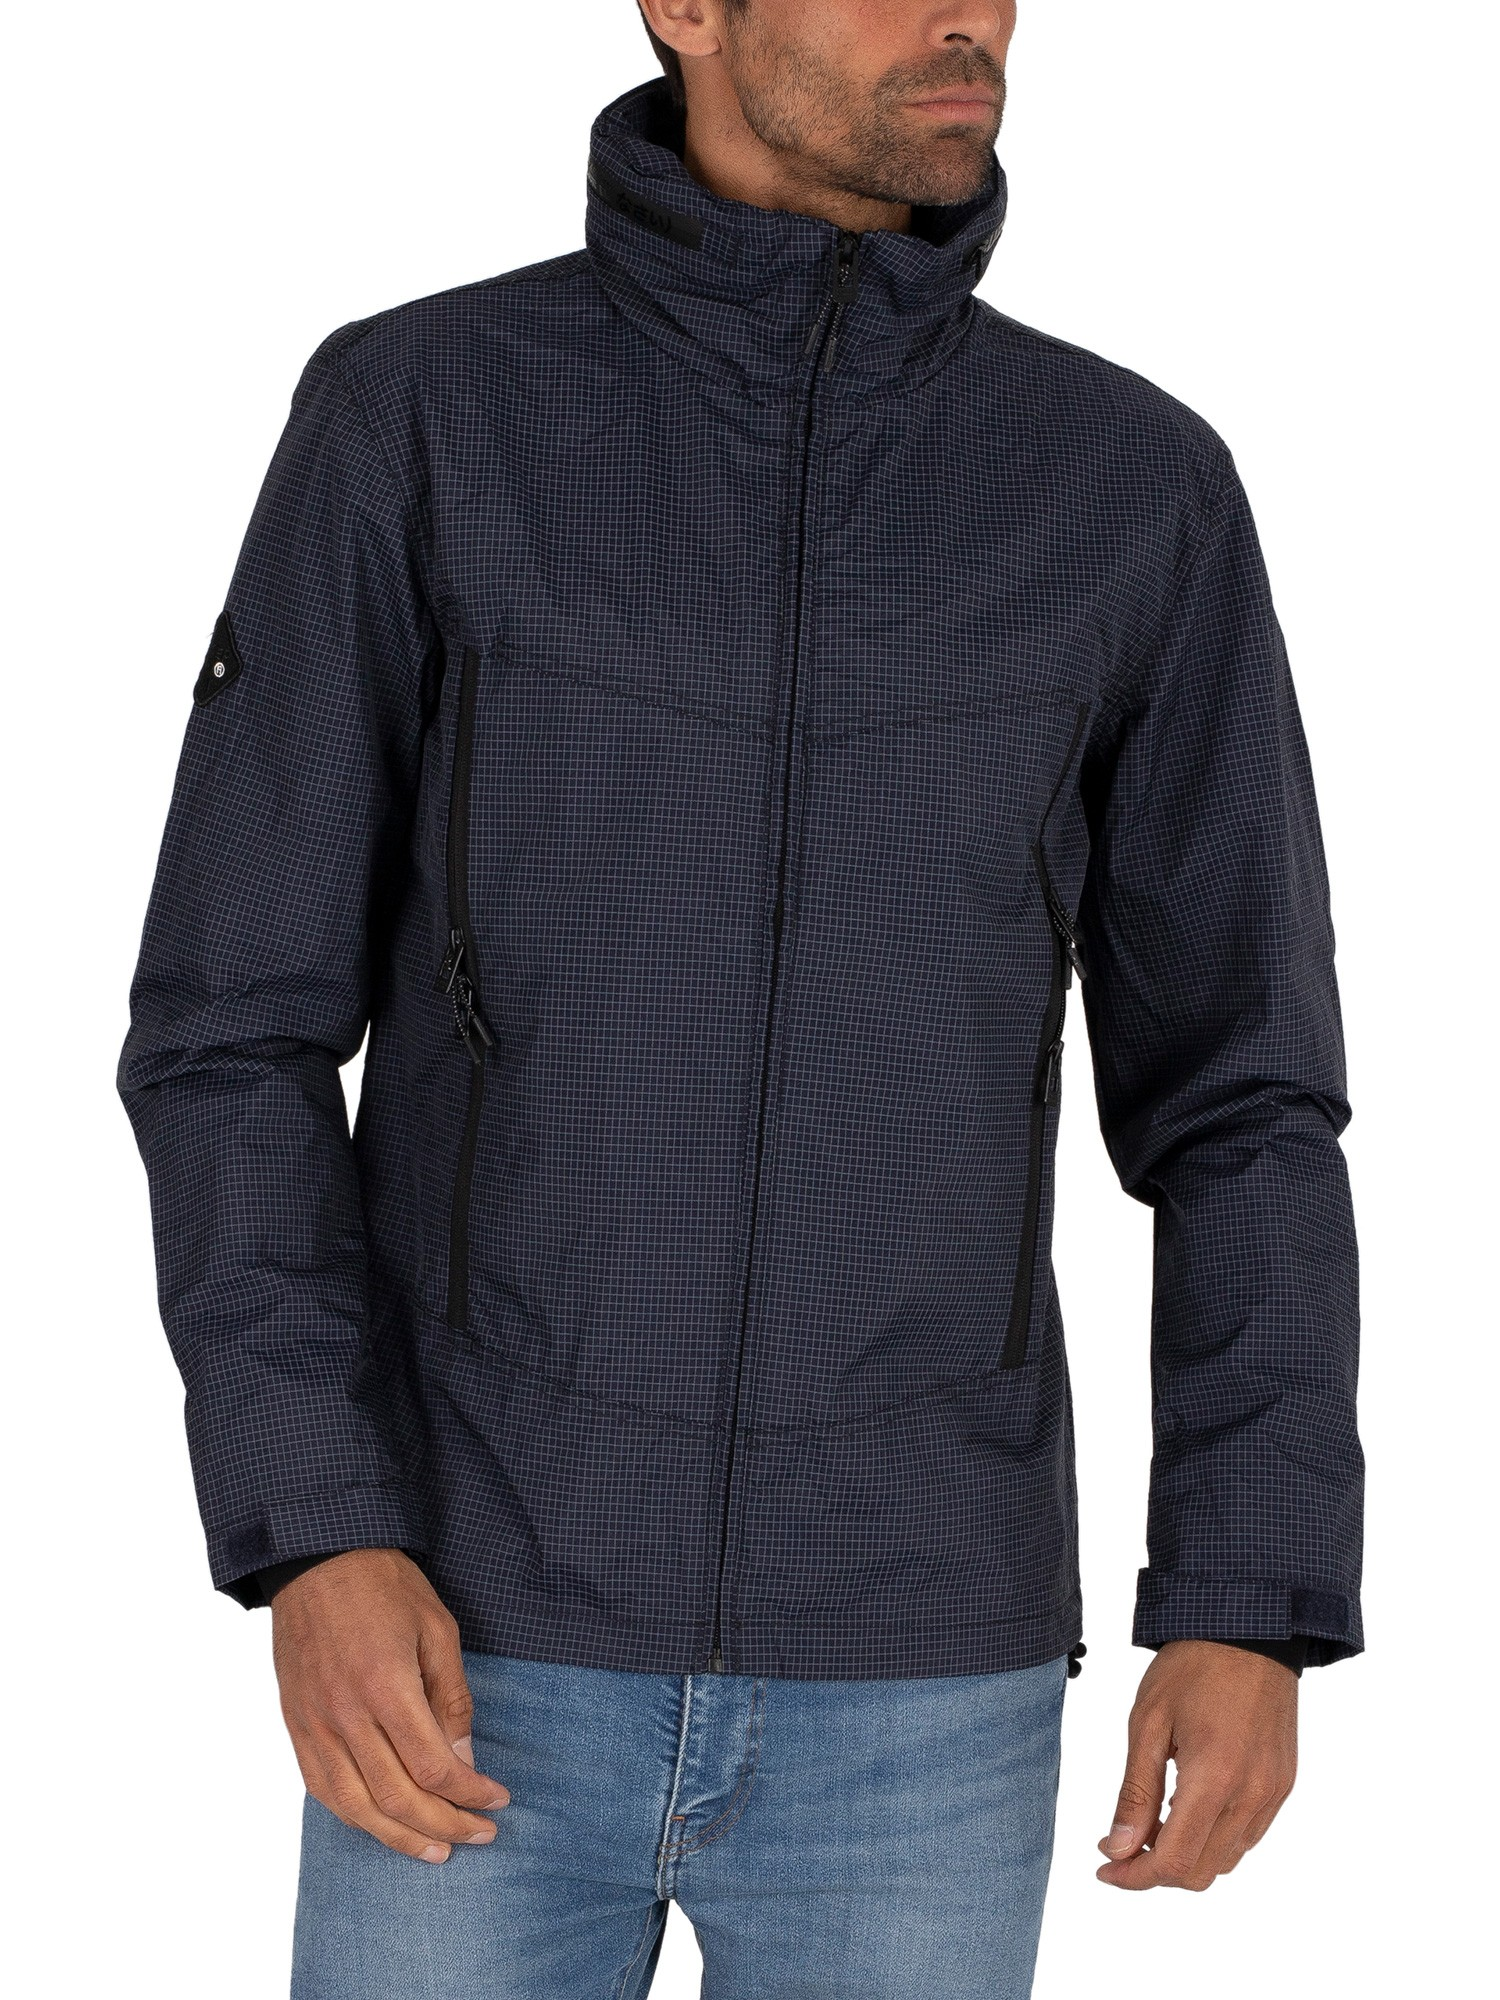 Superdry Altitude Wind Hiker Jacket - Darkest Navy